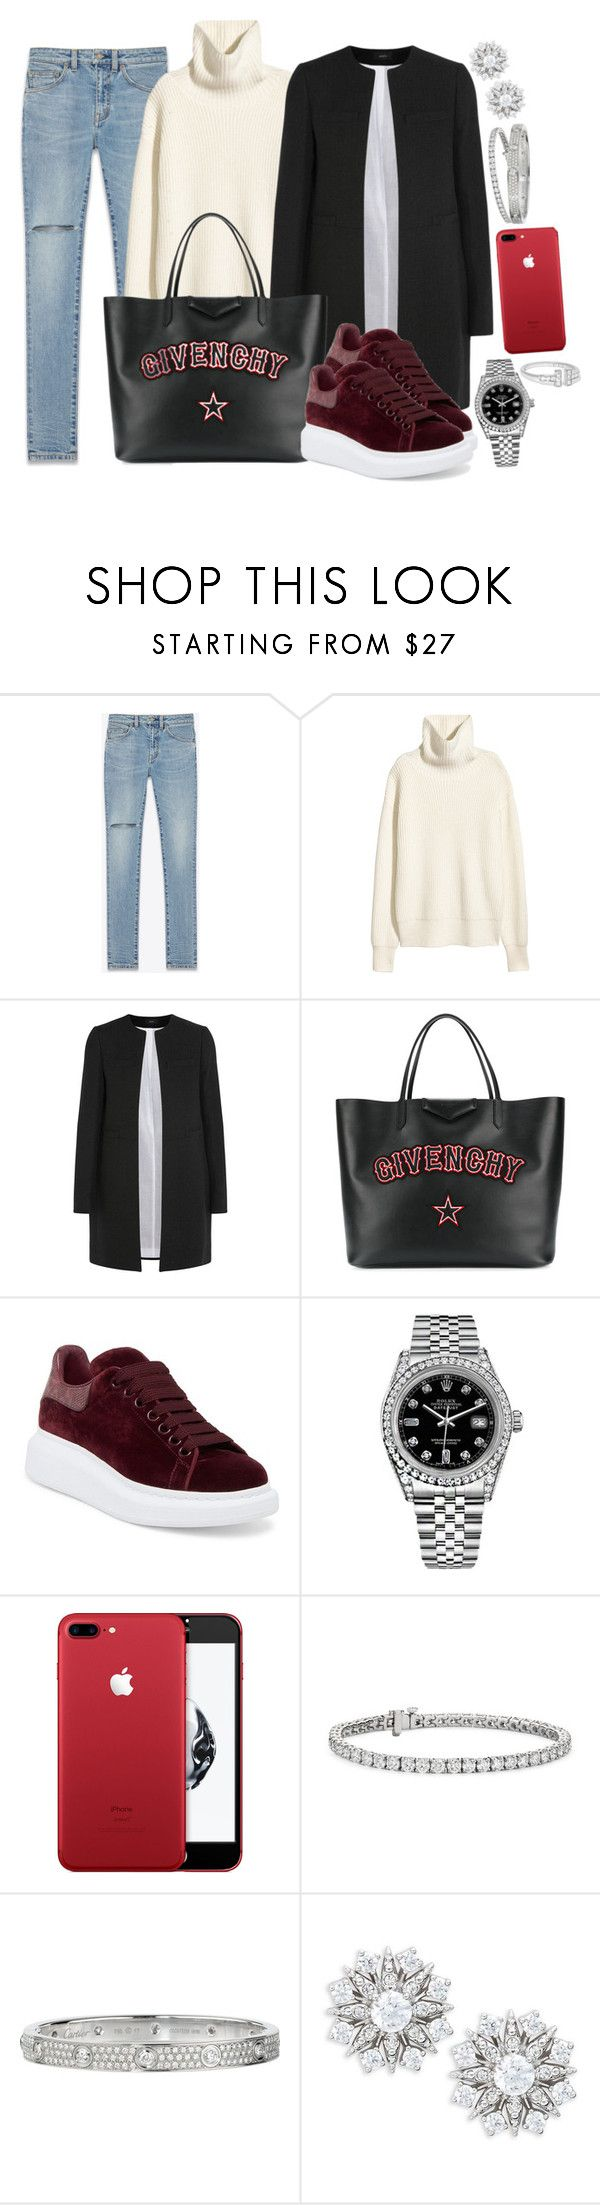 """BACK TO SCHOOL : Givenchy, YSL and Alexander McQueen"" by camrzkn ❤ liked on Polyvore featuring Yves Saint Laurent, Joseph, Givenchy, Alexander McQueen, Rolex, Blue Nile, Cartier and Nadri"